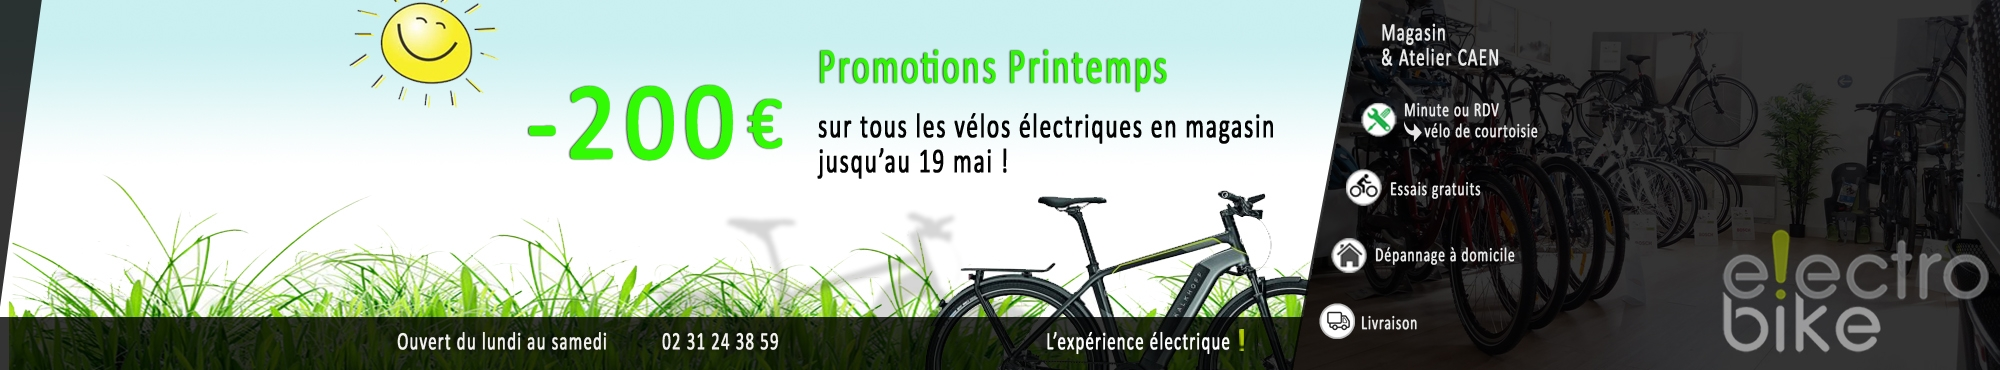 Promotion Printemps 2018